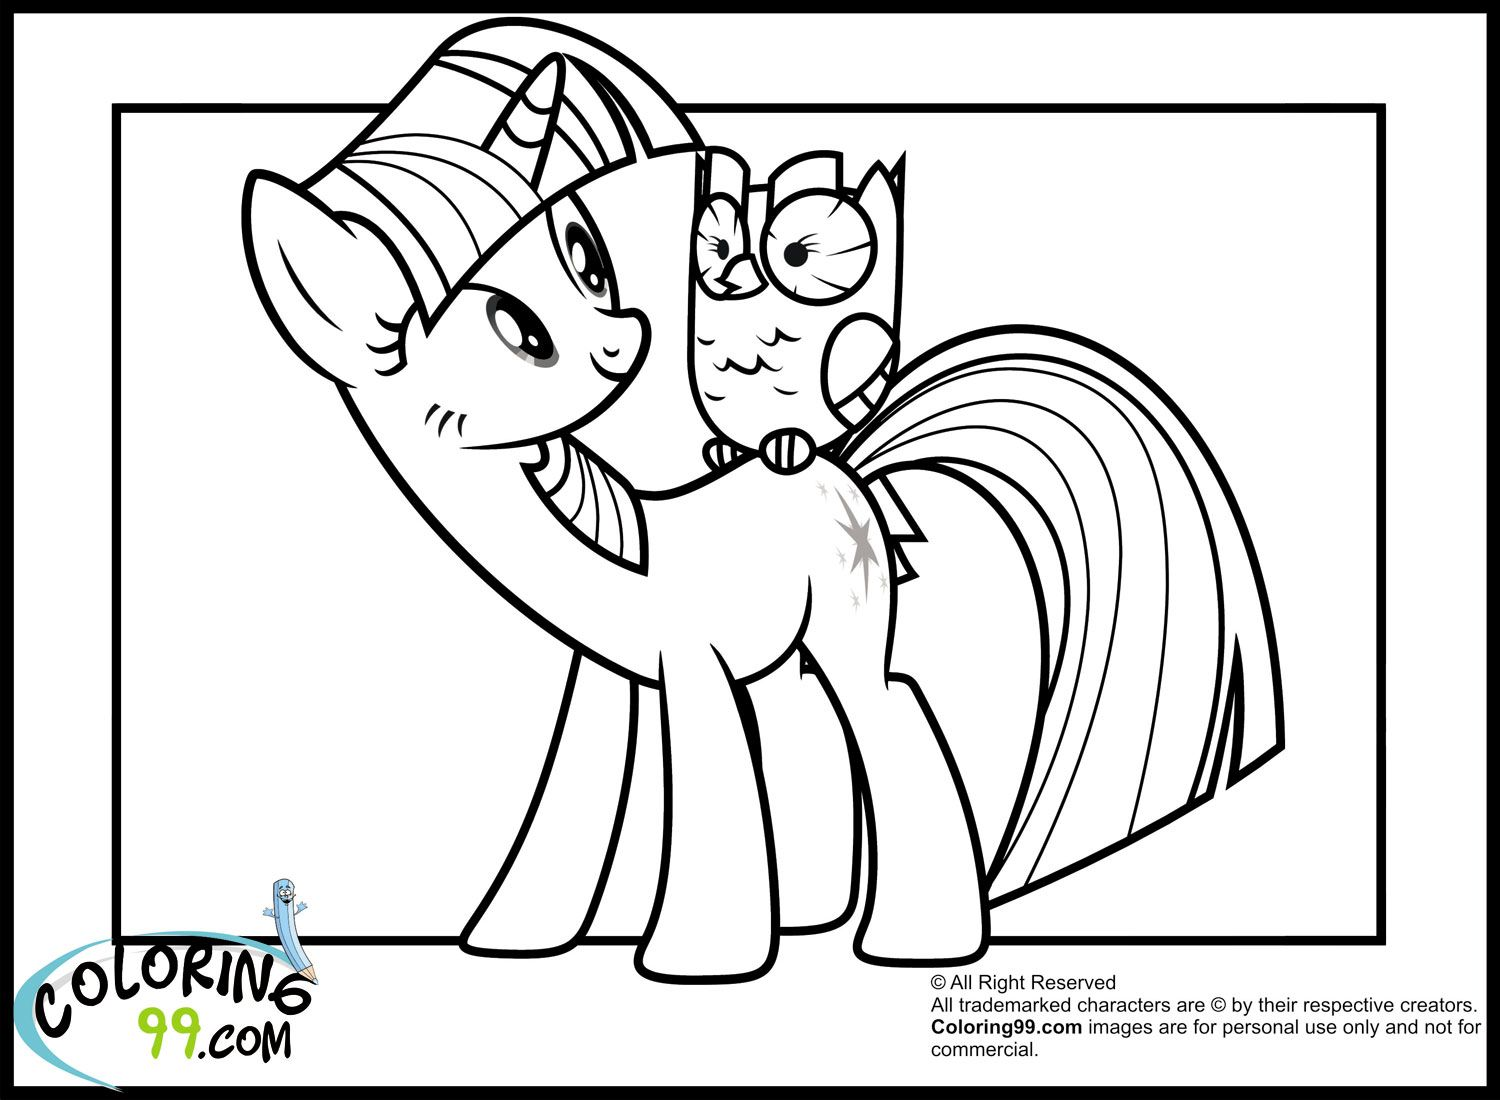 My little pony coloring pages rarity in dress - My Little Pony Coloring Pages Young Rarity Http East Color